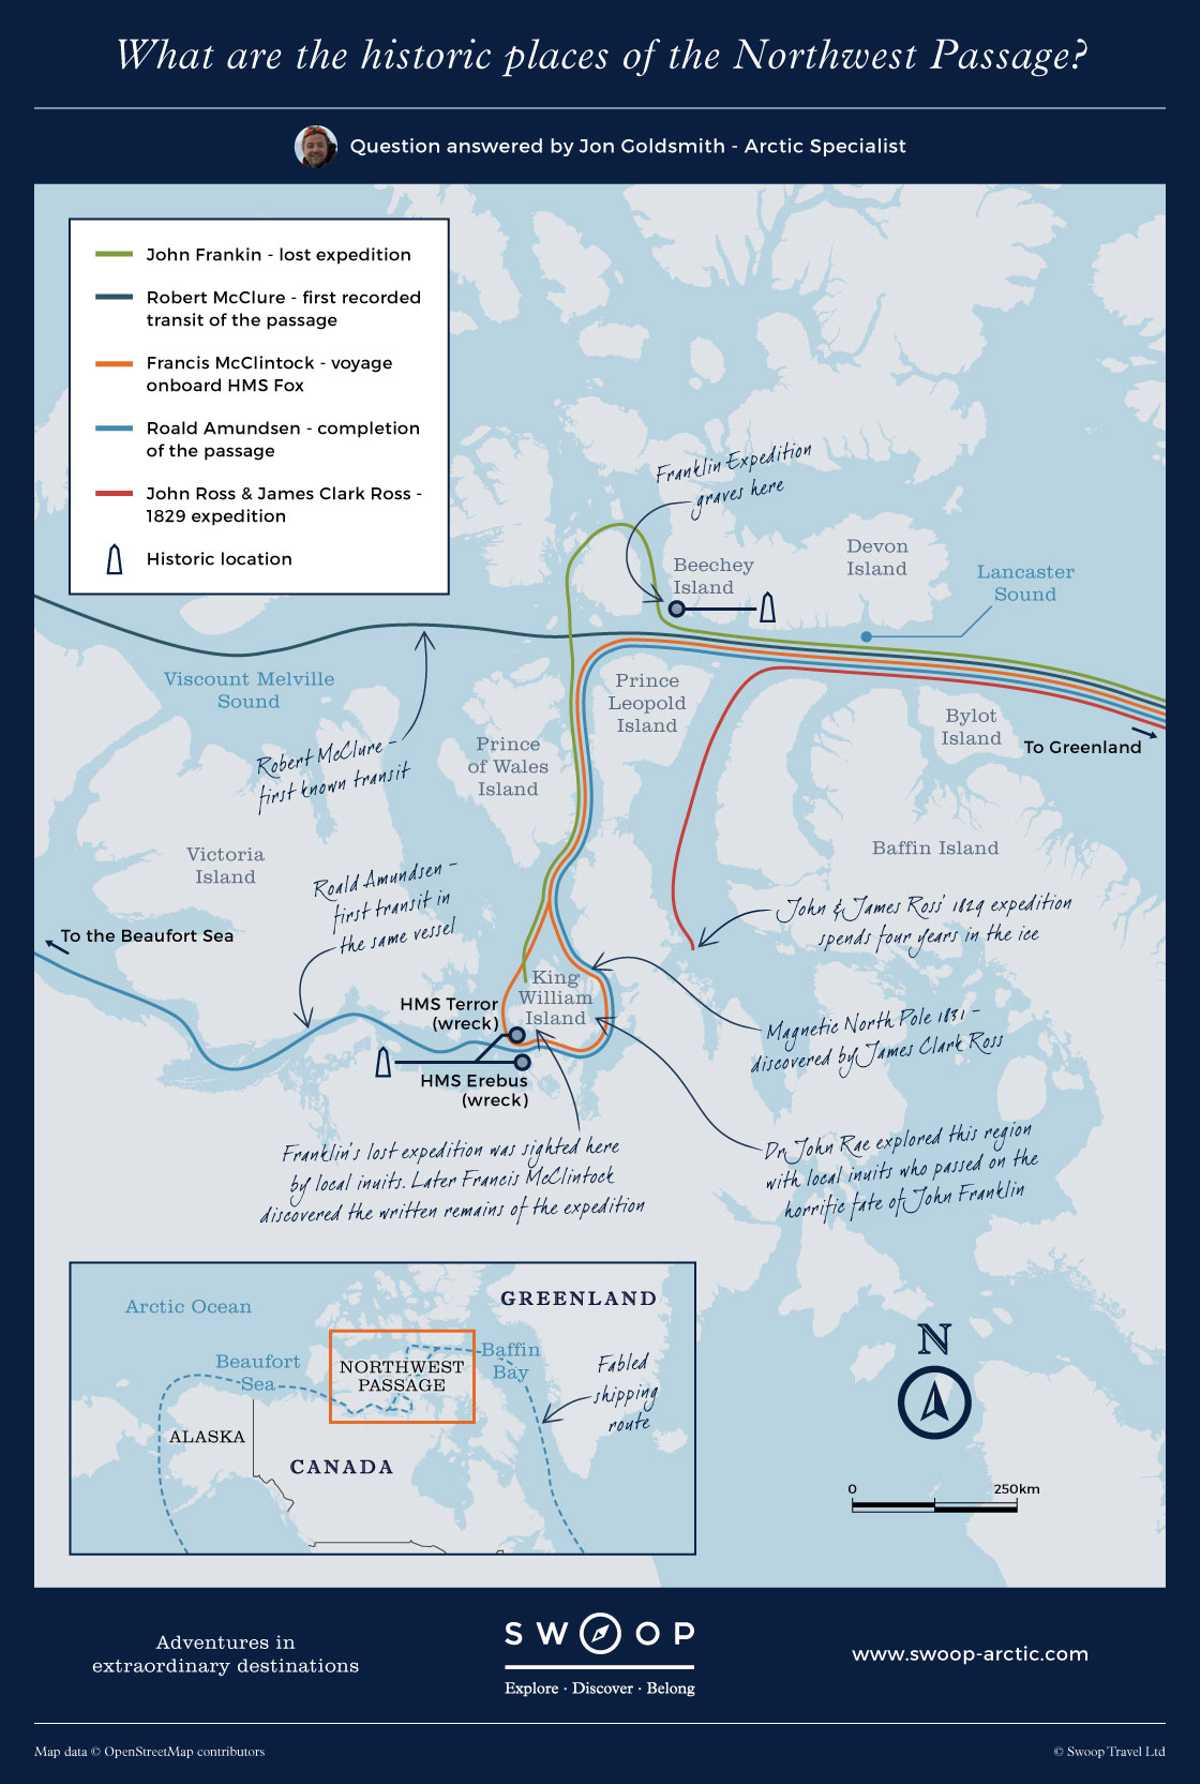 SWO_5_MAP_All_historic-places-of-northwest-passage